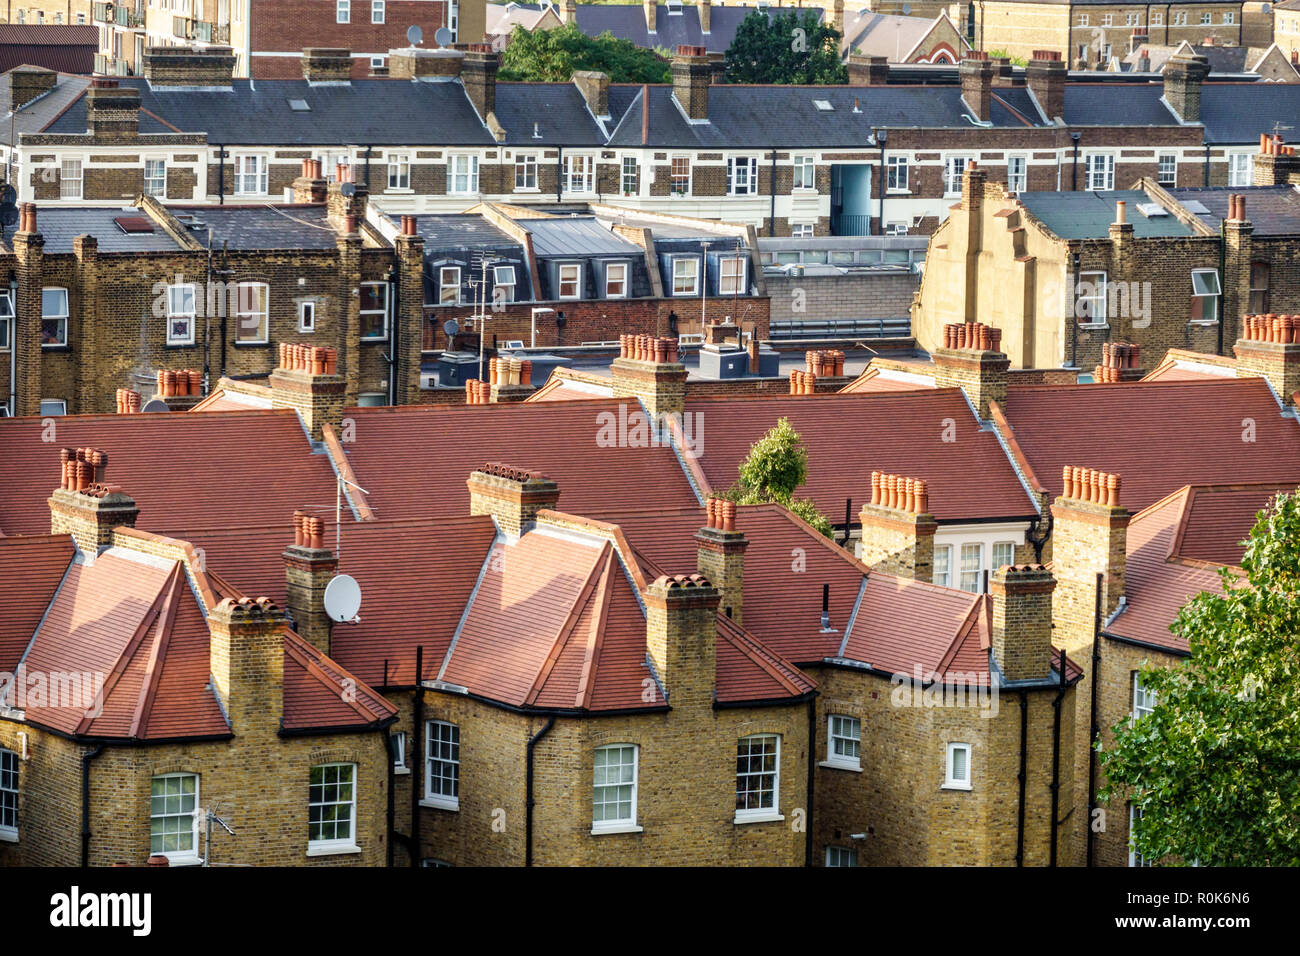 London England United Kingdom Great Britain Lambeth South Bank terraced row houses rooftops identical mirror image houses townhomes chimneys tiled roo - Stock Image